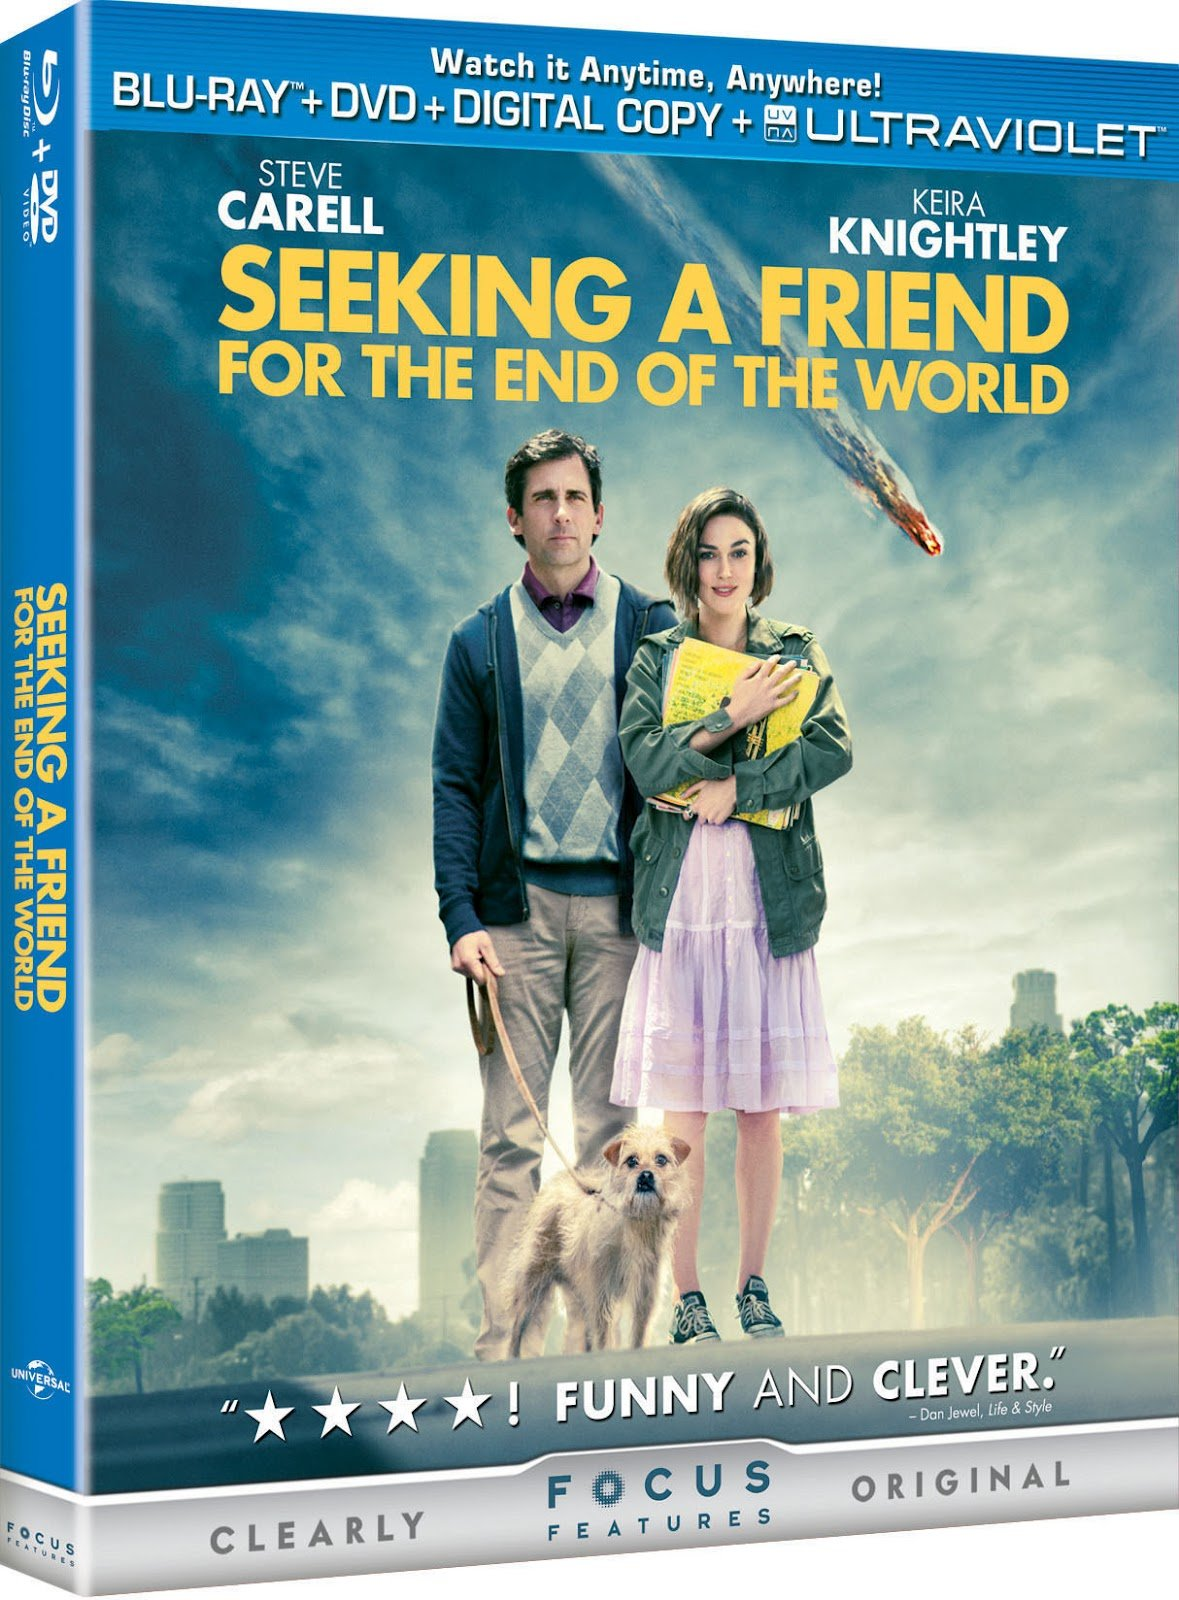 Seeking A Friend For The End Of The World Blu-Ray Review